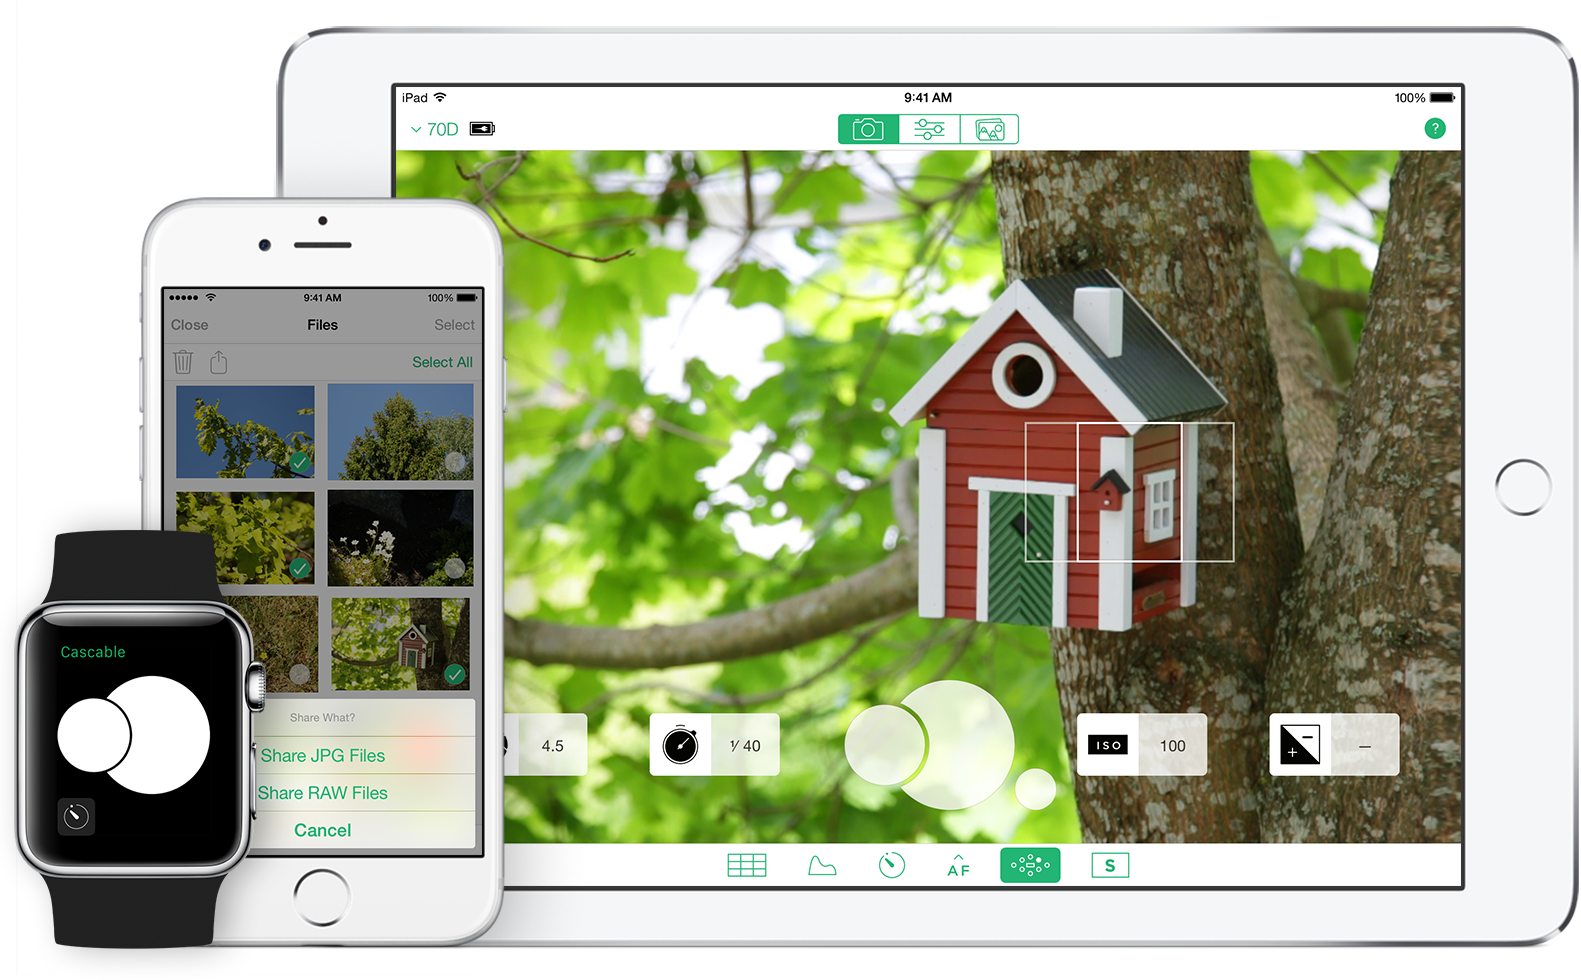 Cascable iOS app offers remote control of WiFi-enabled